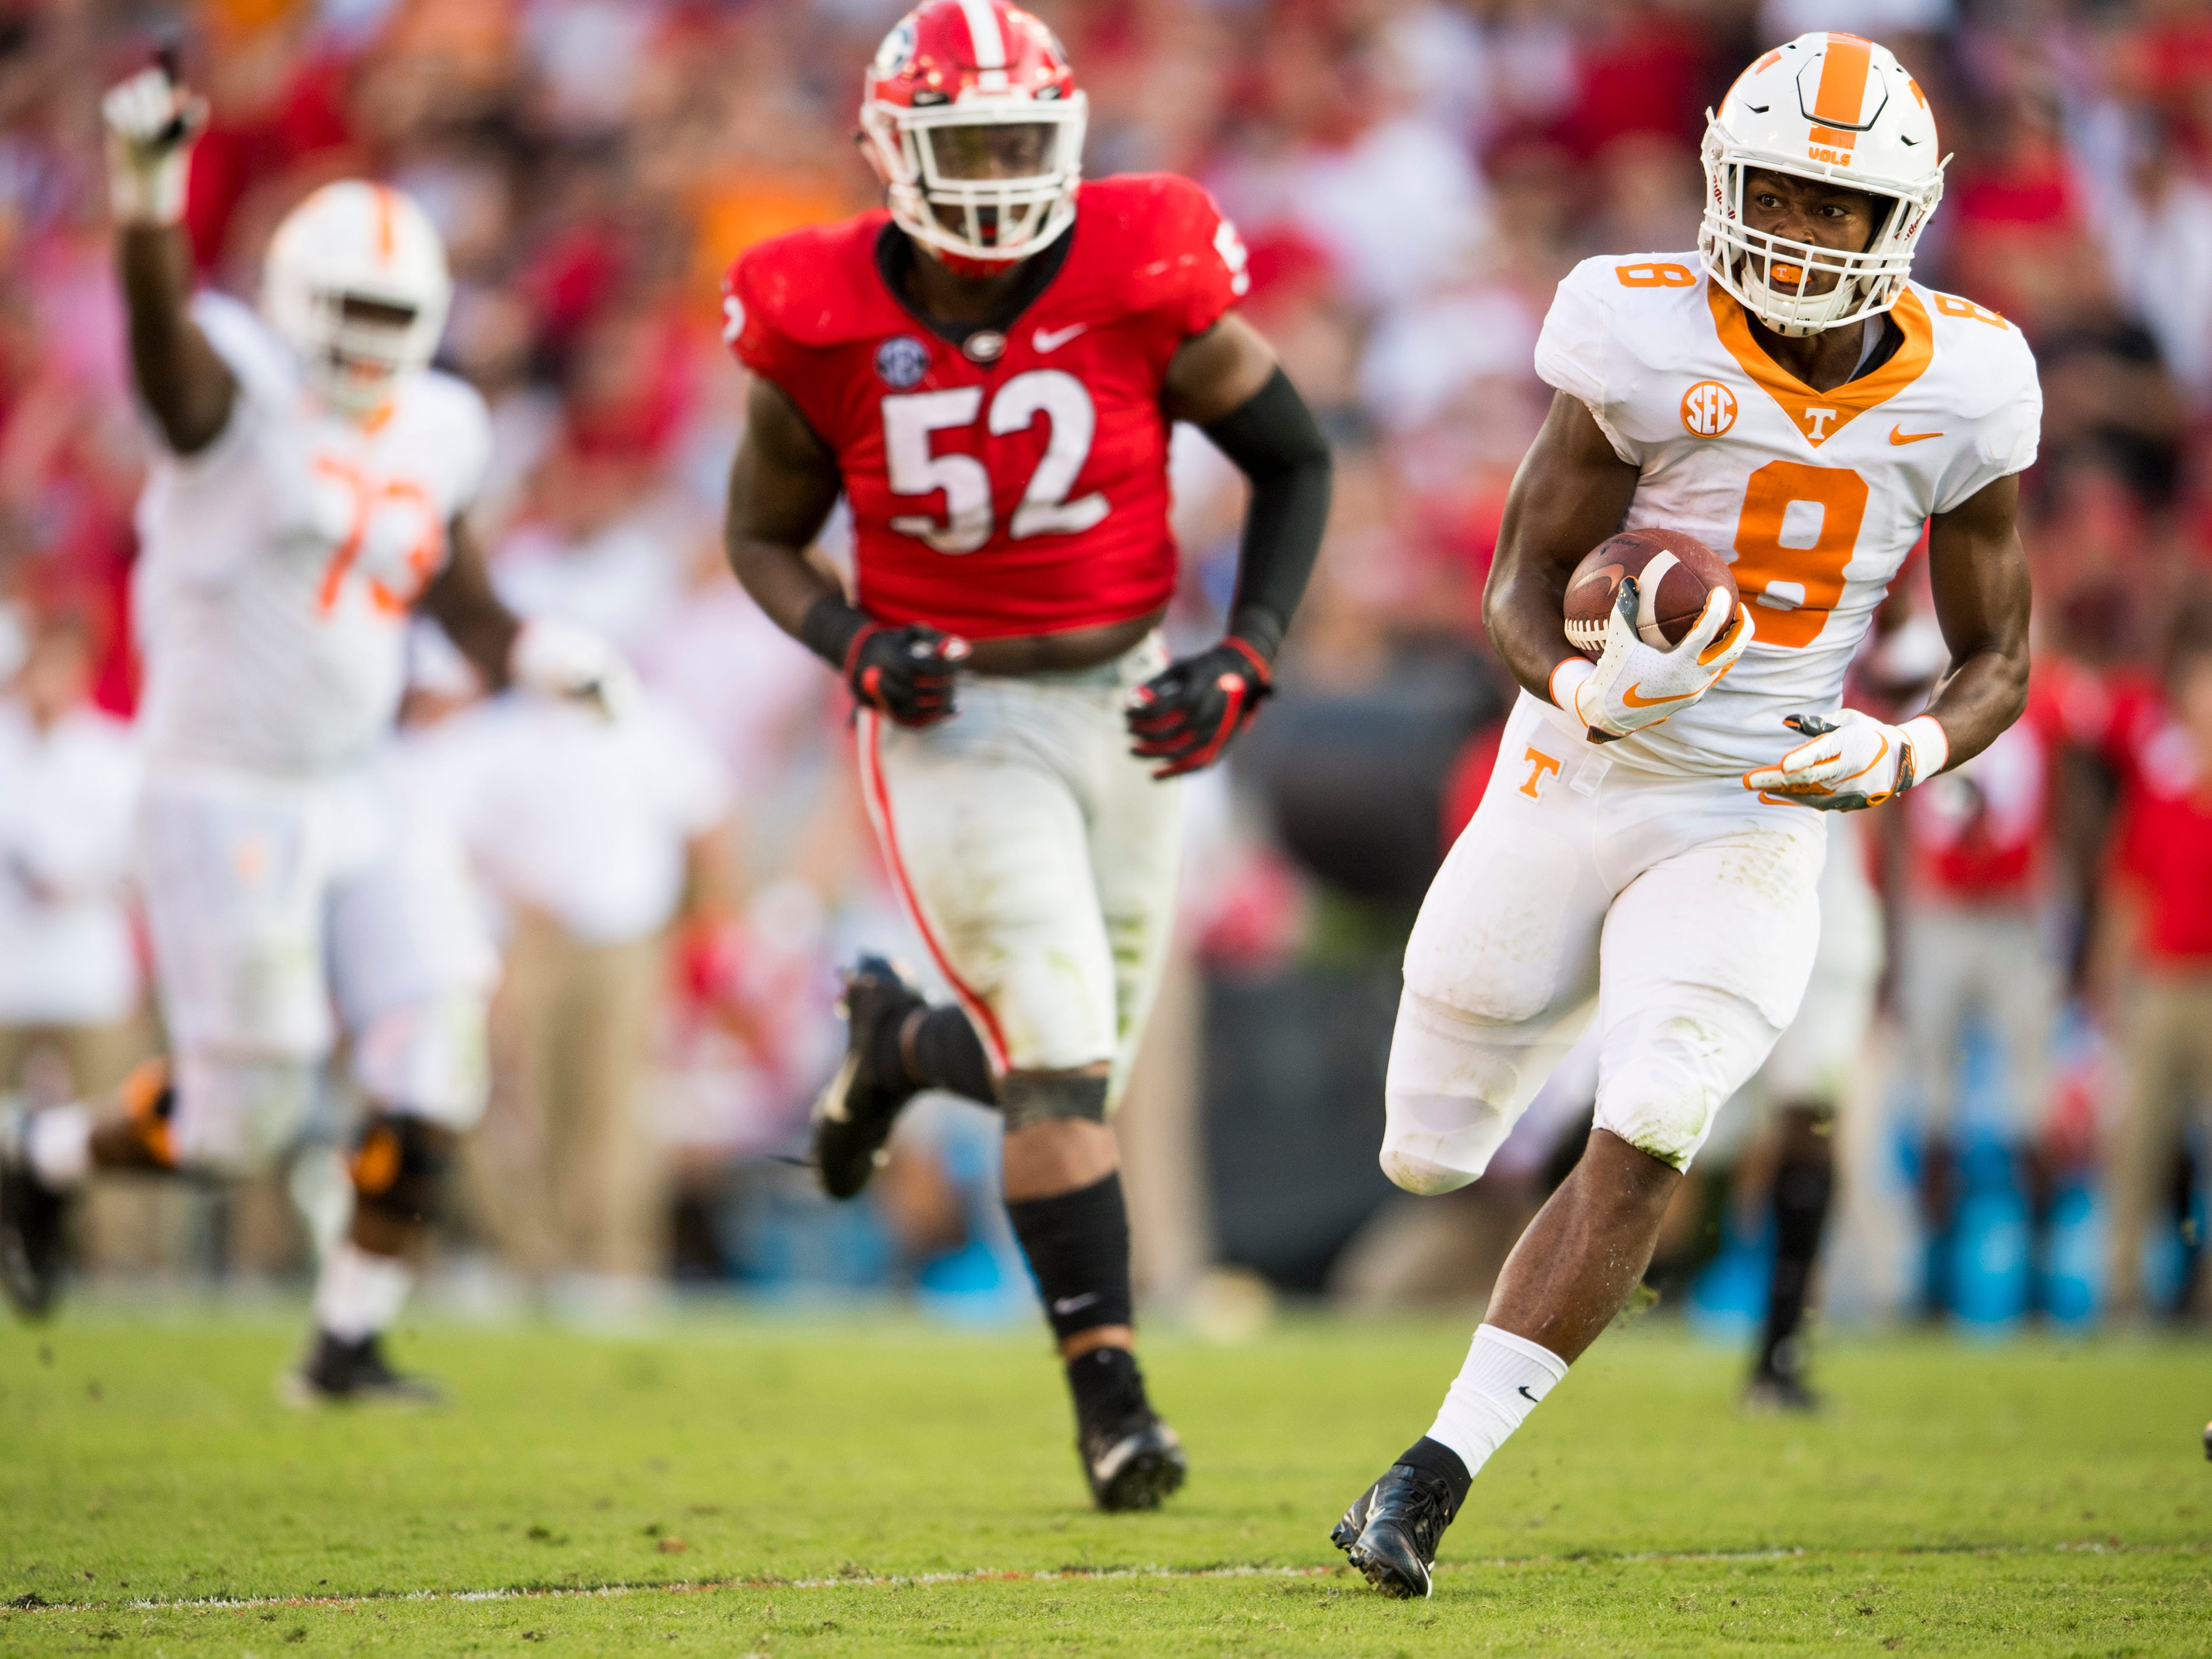 Tennessee running back Ty Chandler (8) runs for a touchdown during the Tennessee Volunteers' game against Georgia in Sanford Stadium in Athens, Ga., on Saturday, Sept. 29, 2018.